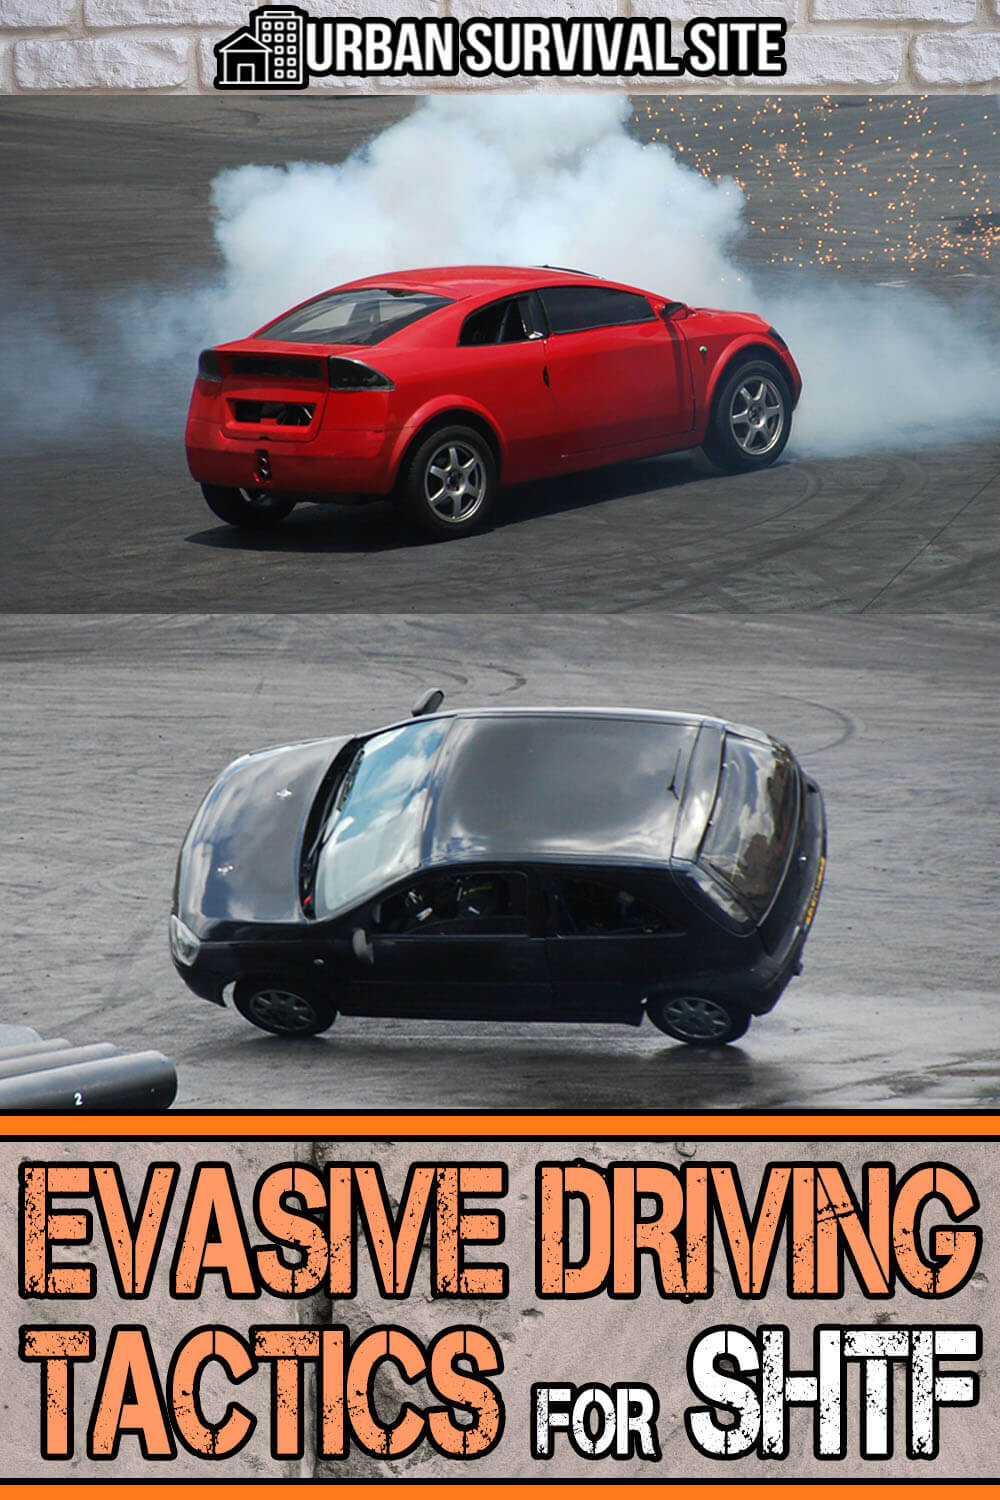 Evasive Driving Tactics for SHTF